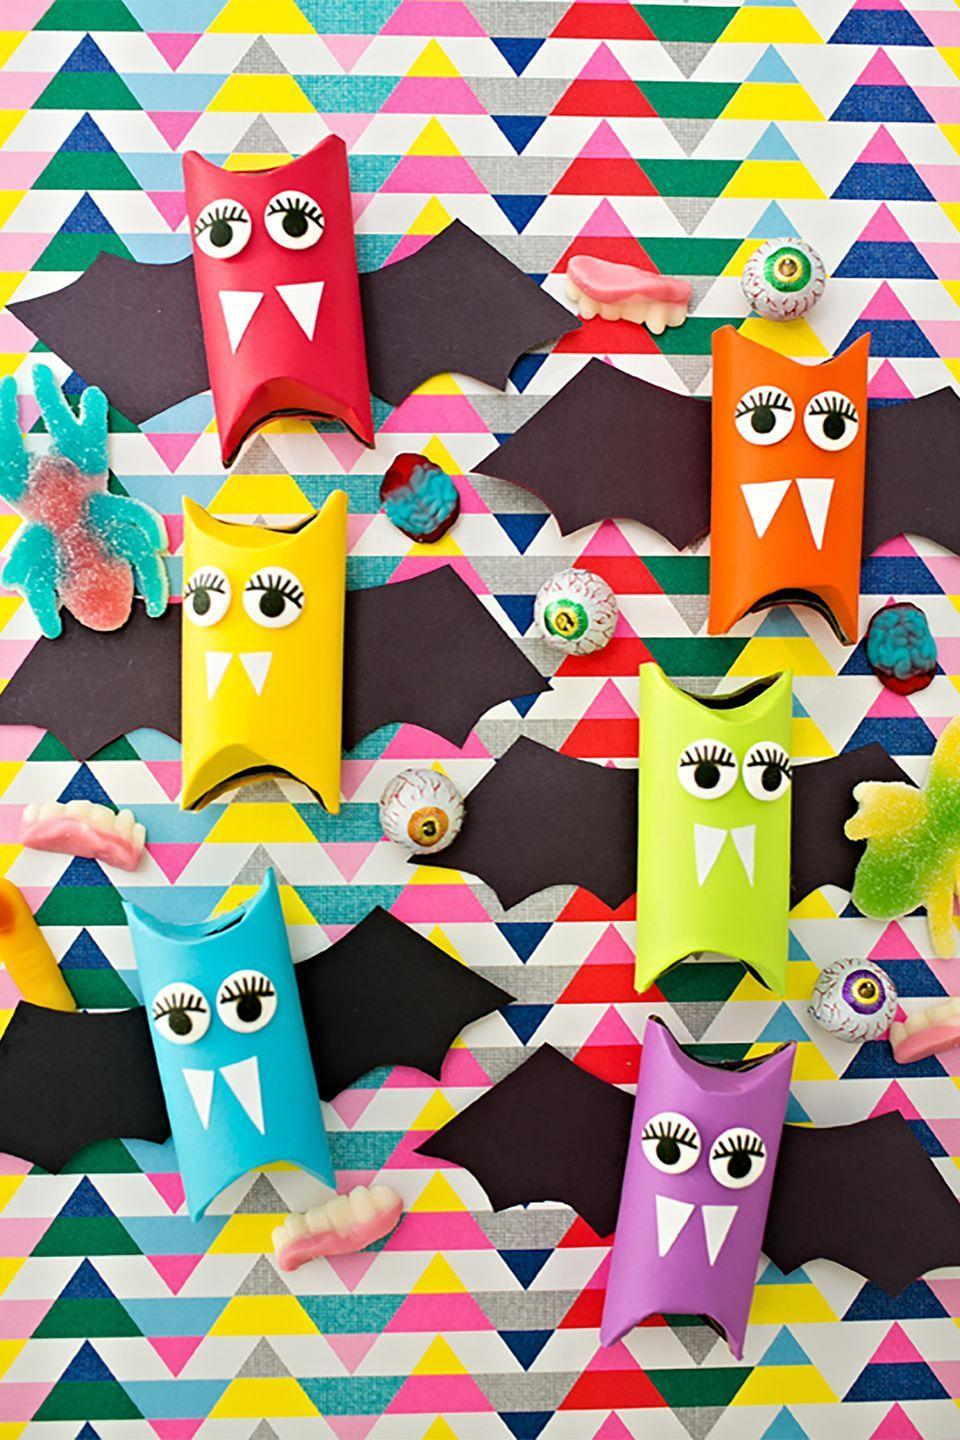 "<p>These colorful creatures are filled with goodies that will make kids go absolutely batty. </p><p><strong>Get the tutorial at <a href=""https://www.hellowonderful.co/post/RAINBOW-PAPER-TUBE-BATS--HALLOWEEN-CRAFT-FOR-KIDS"" rel=""nofollow noopener"" target=""_blank"" data-ylk=""slk:Hello, Wonderful"" class=""link rapid-noclick-resp"">Hello, Wonderful</a>.</strong><br></p><p><a class=""link rapid-noclick-resp"" href=""https://www.amazon.com/Astrobrights-Cardstock-Spectrum-Assortment-80944-01/dp/B01LX0UJBN/?tag=syn-yahoo-20&ascsubtag=%5Bartid%7C10050.g.4950%5Bsrc%7Cyahoo-us"" rel=""nofollow noopener"" target=""_blank"" data-ylk=""slk:SHOP COLORFUL CARDSTOCK"">SHOP COLORFUL CARDSTOCK</a><br></p>"